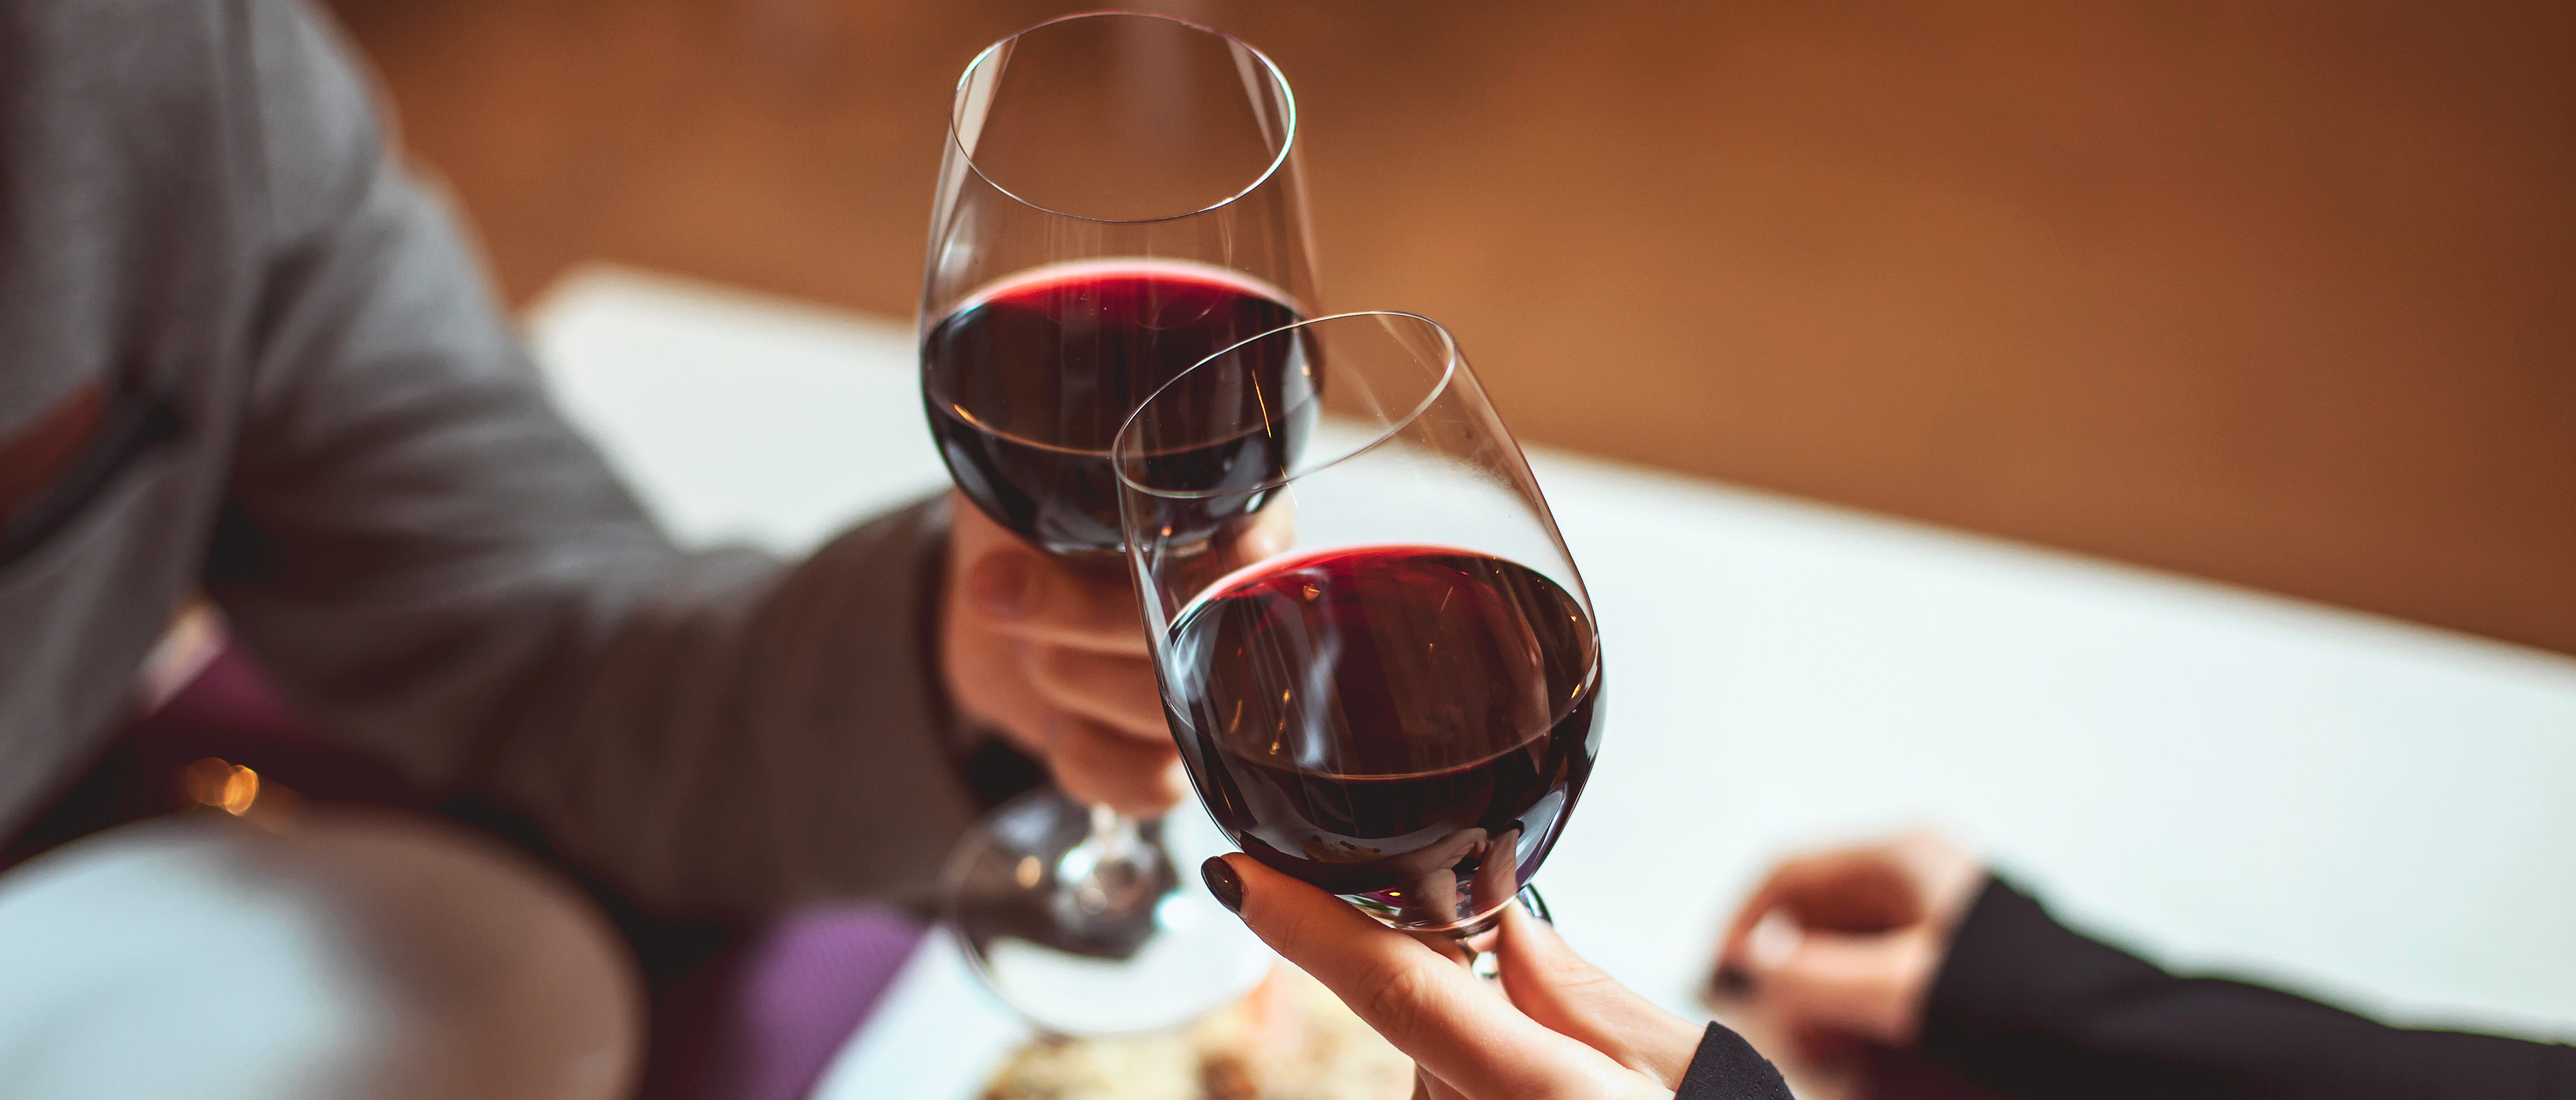 What is a cork fee in a restaurant